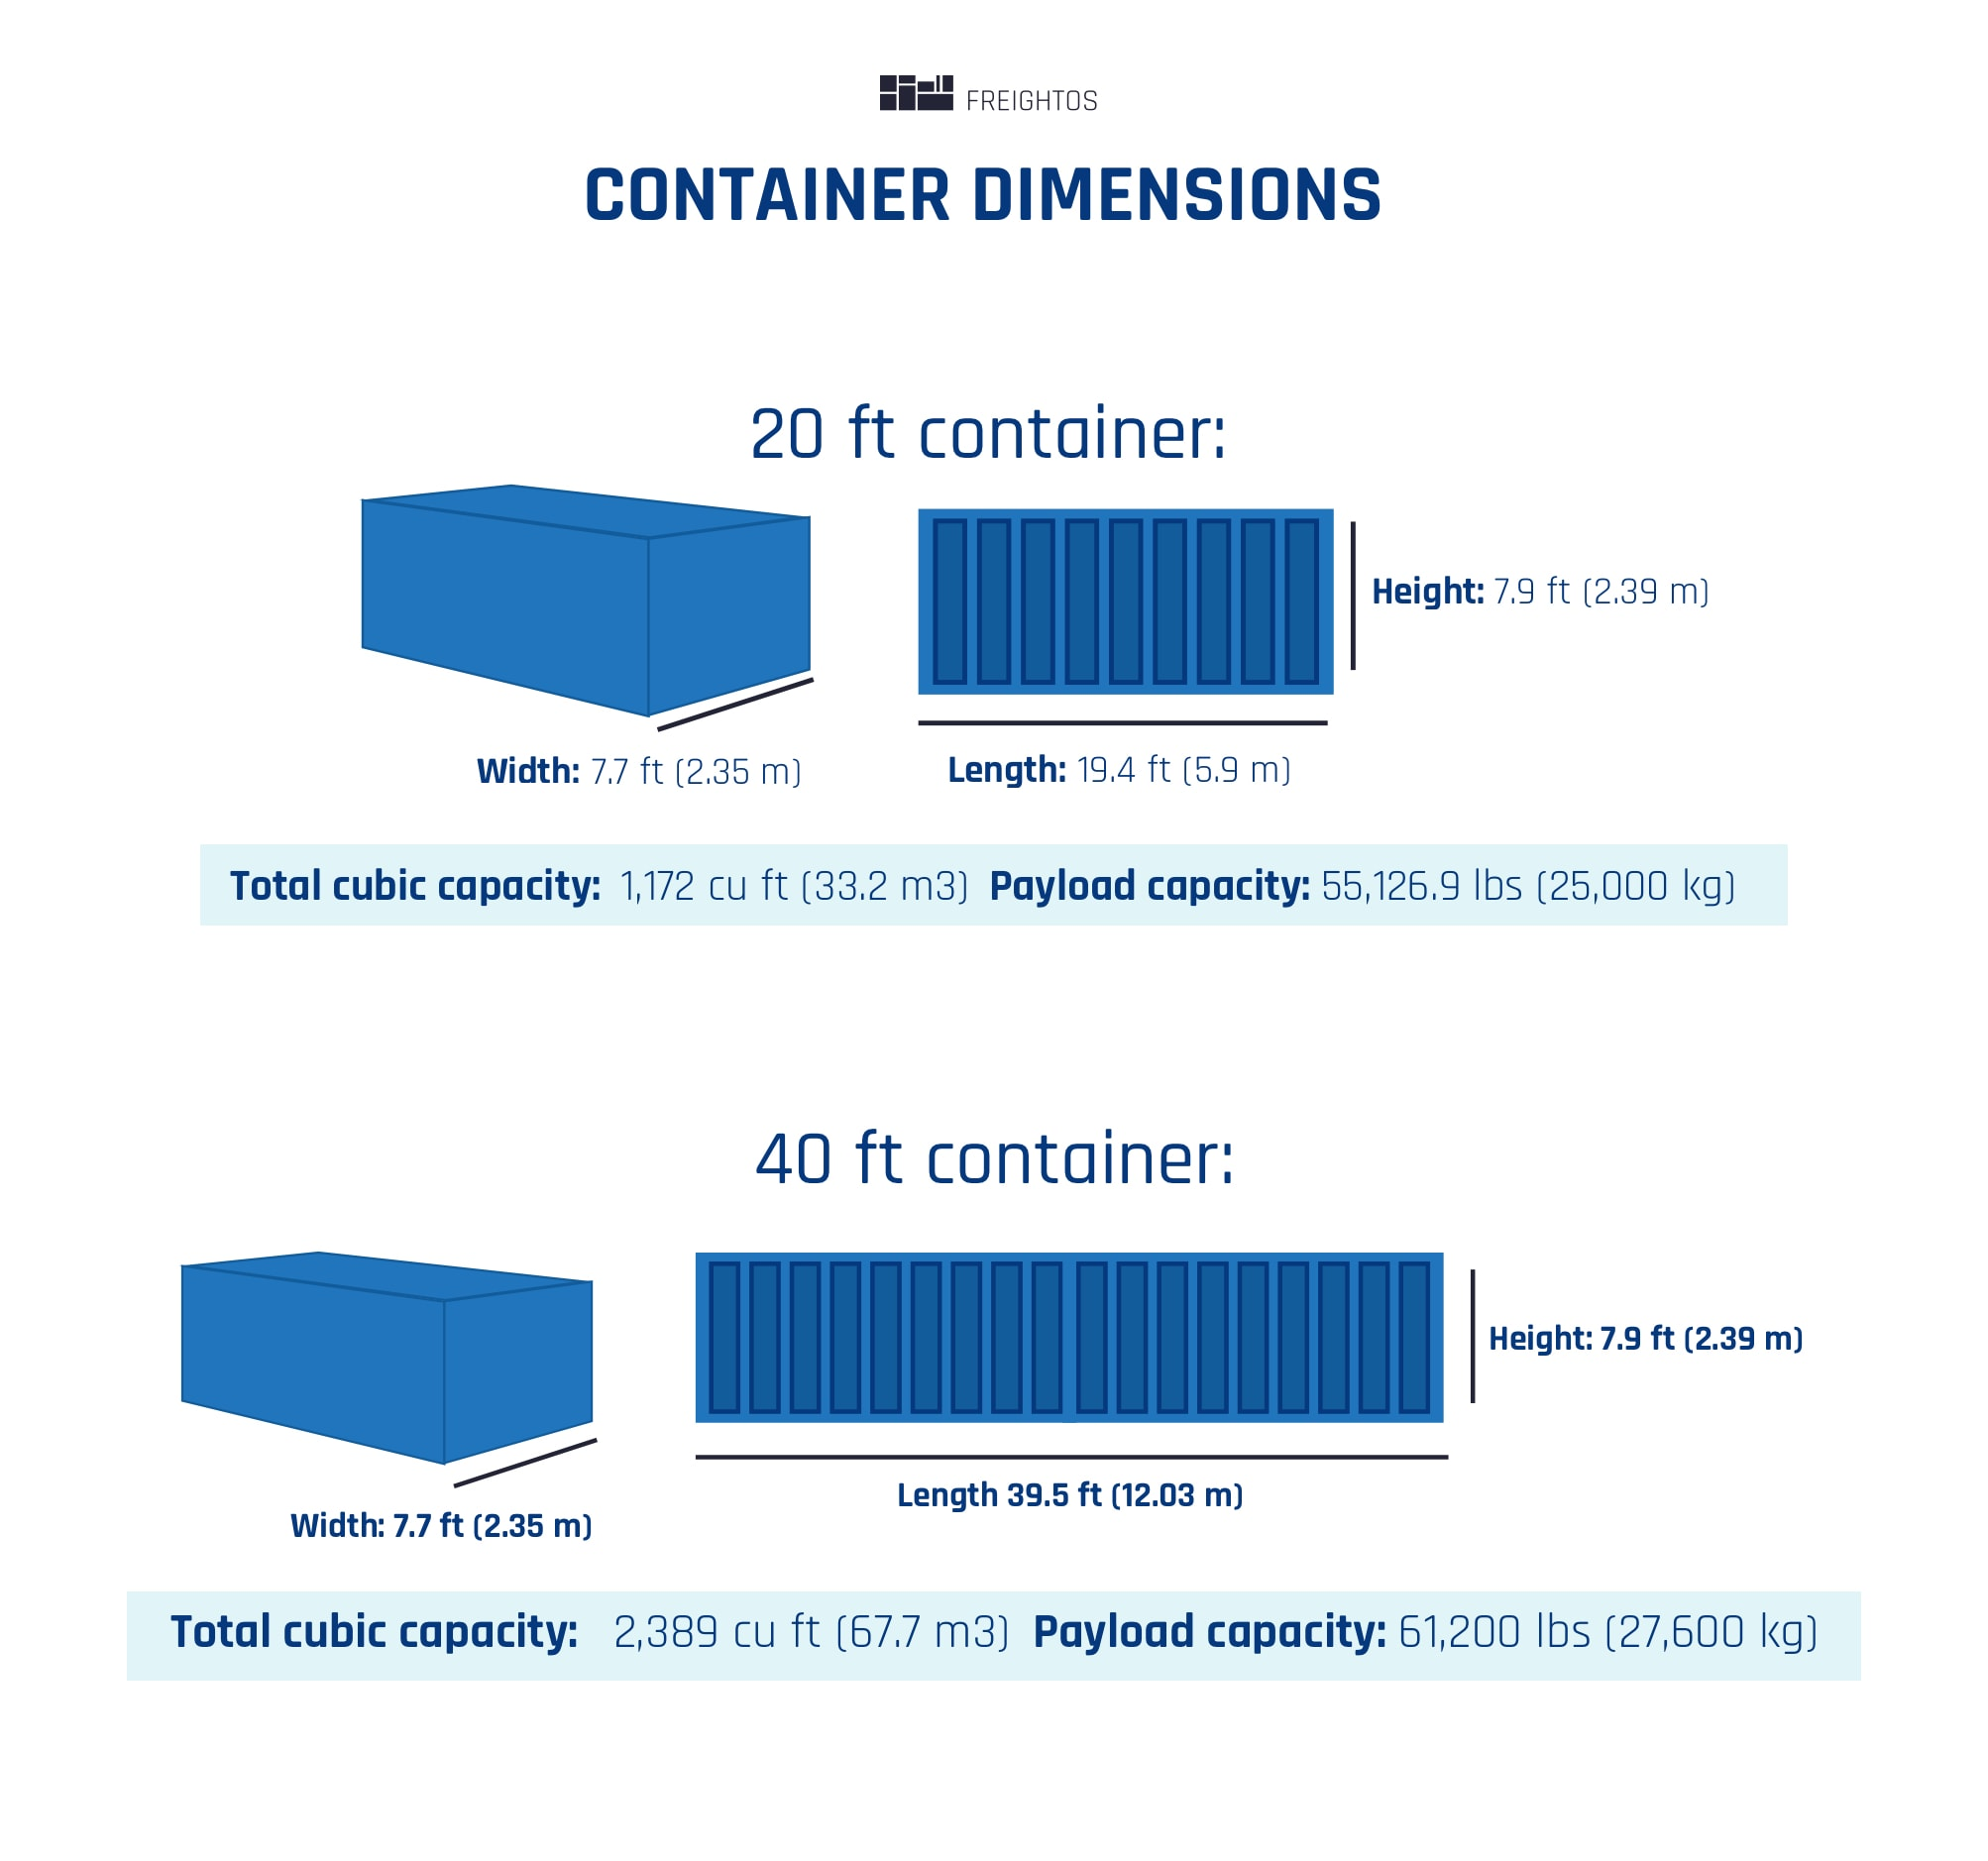 fcl container size and dimensions